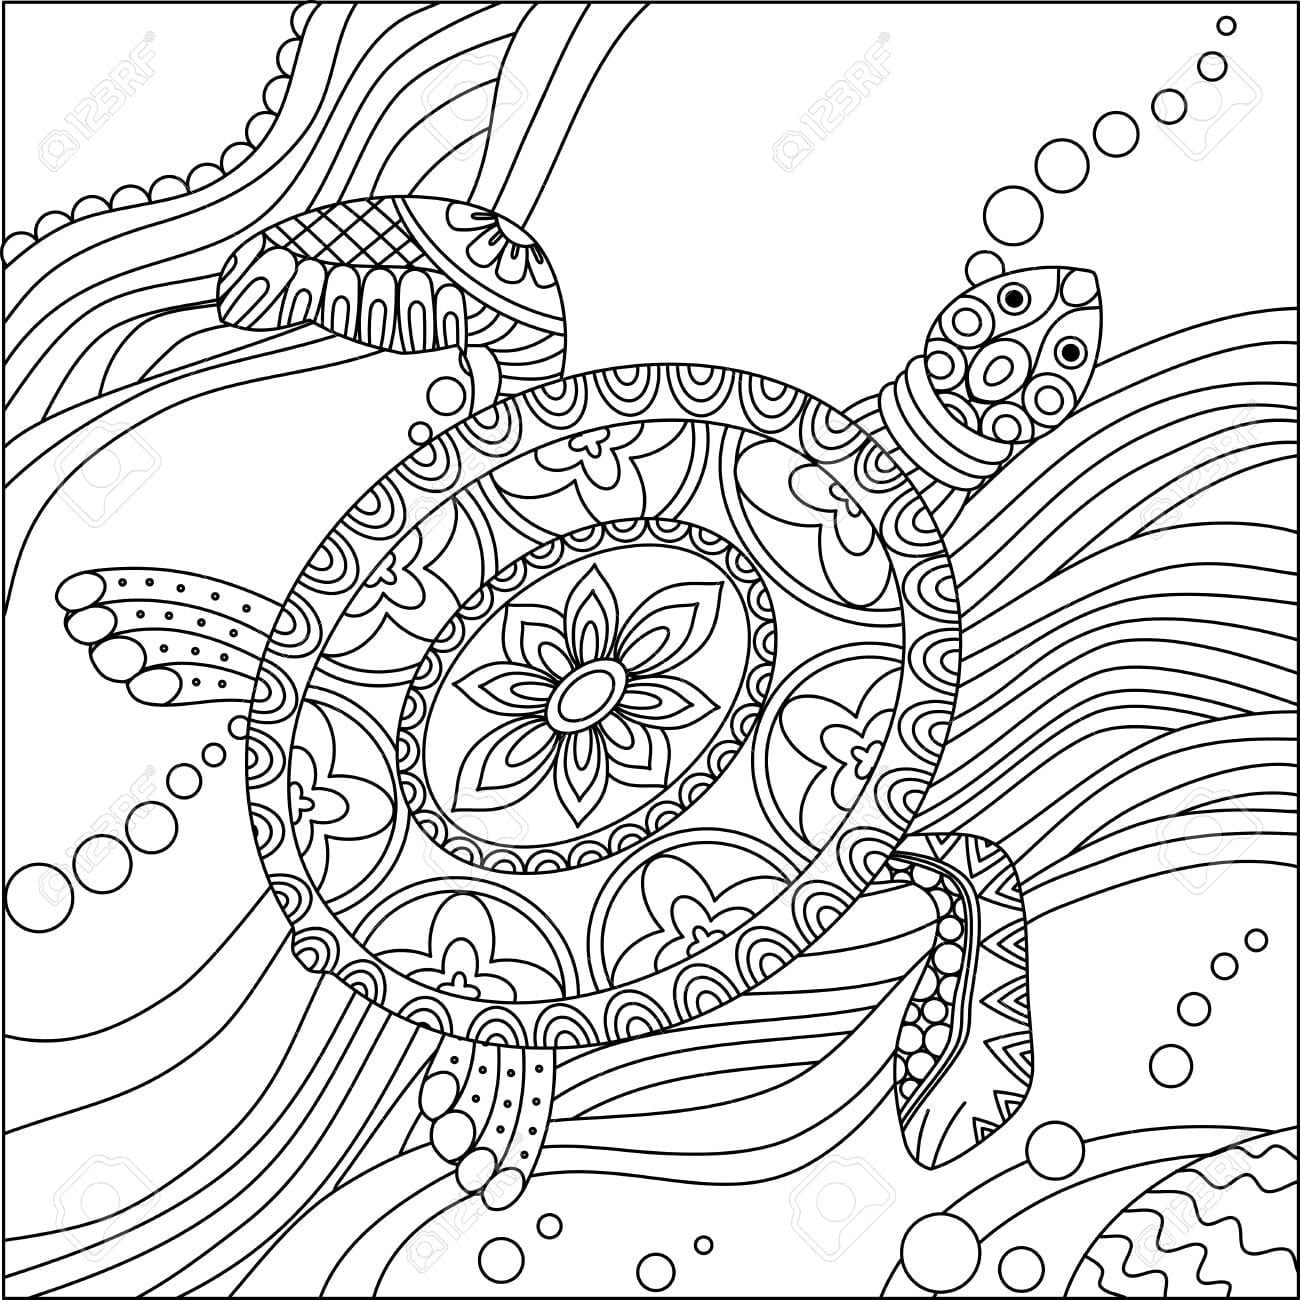 Ask A Biologist Coloring Page